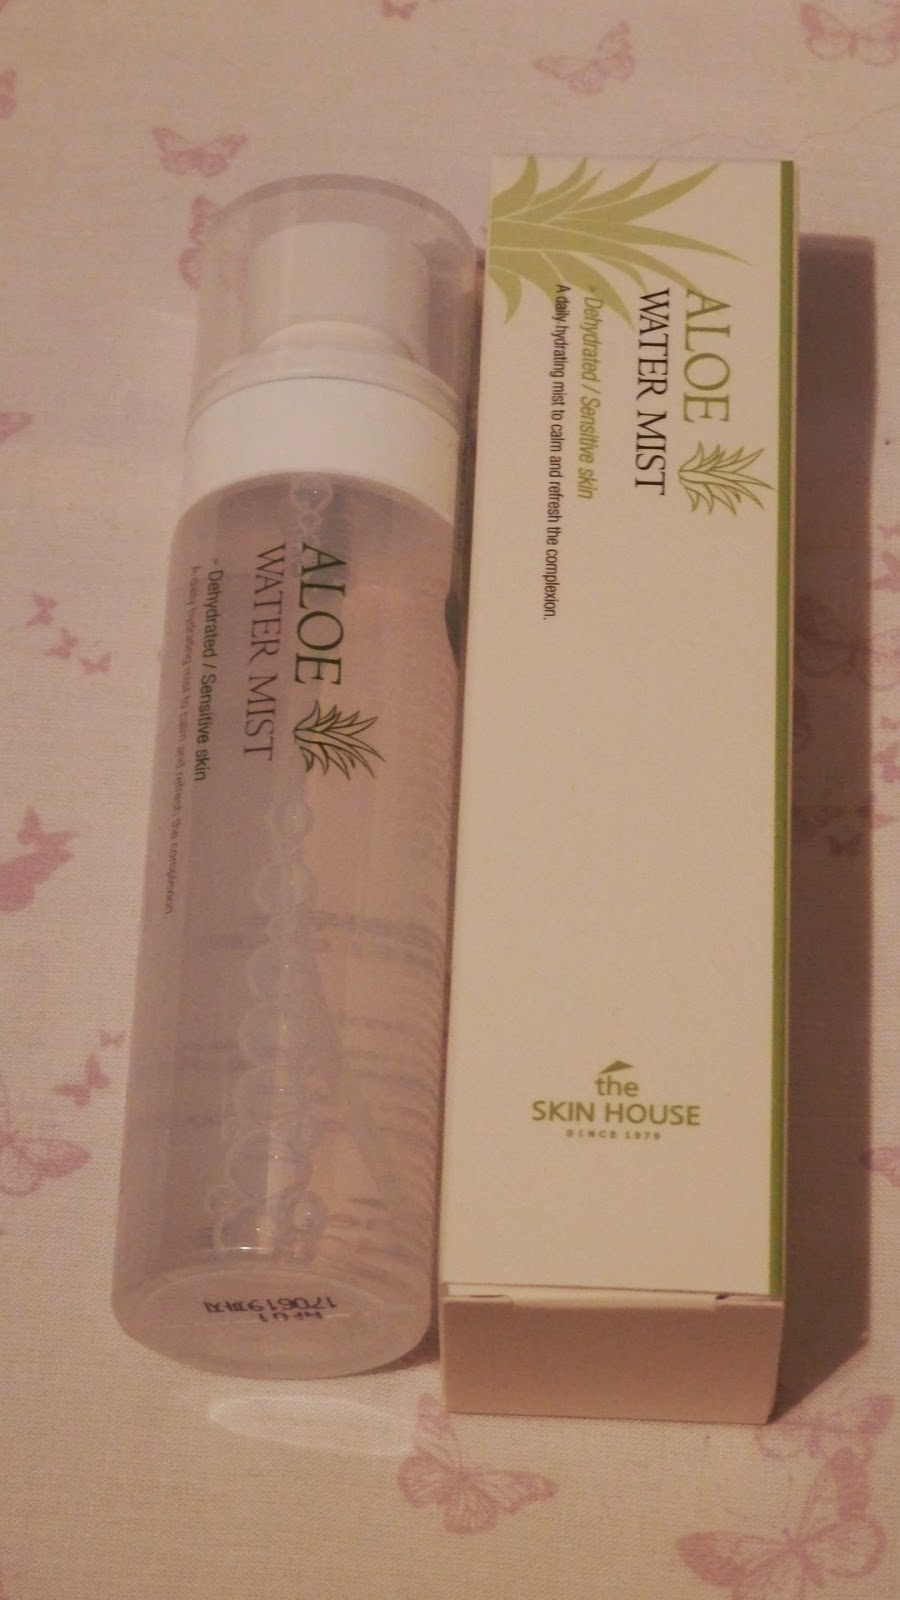 Memebox Special #13 Cooling Care The Skin House Aloe Water Mist